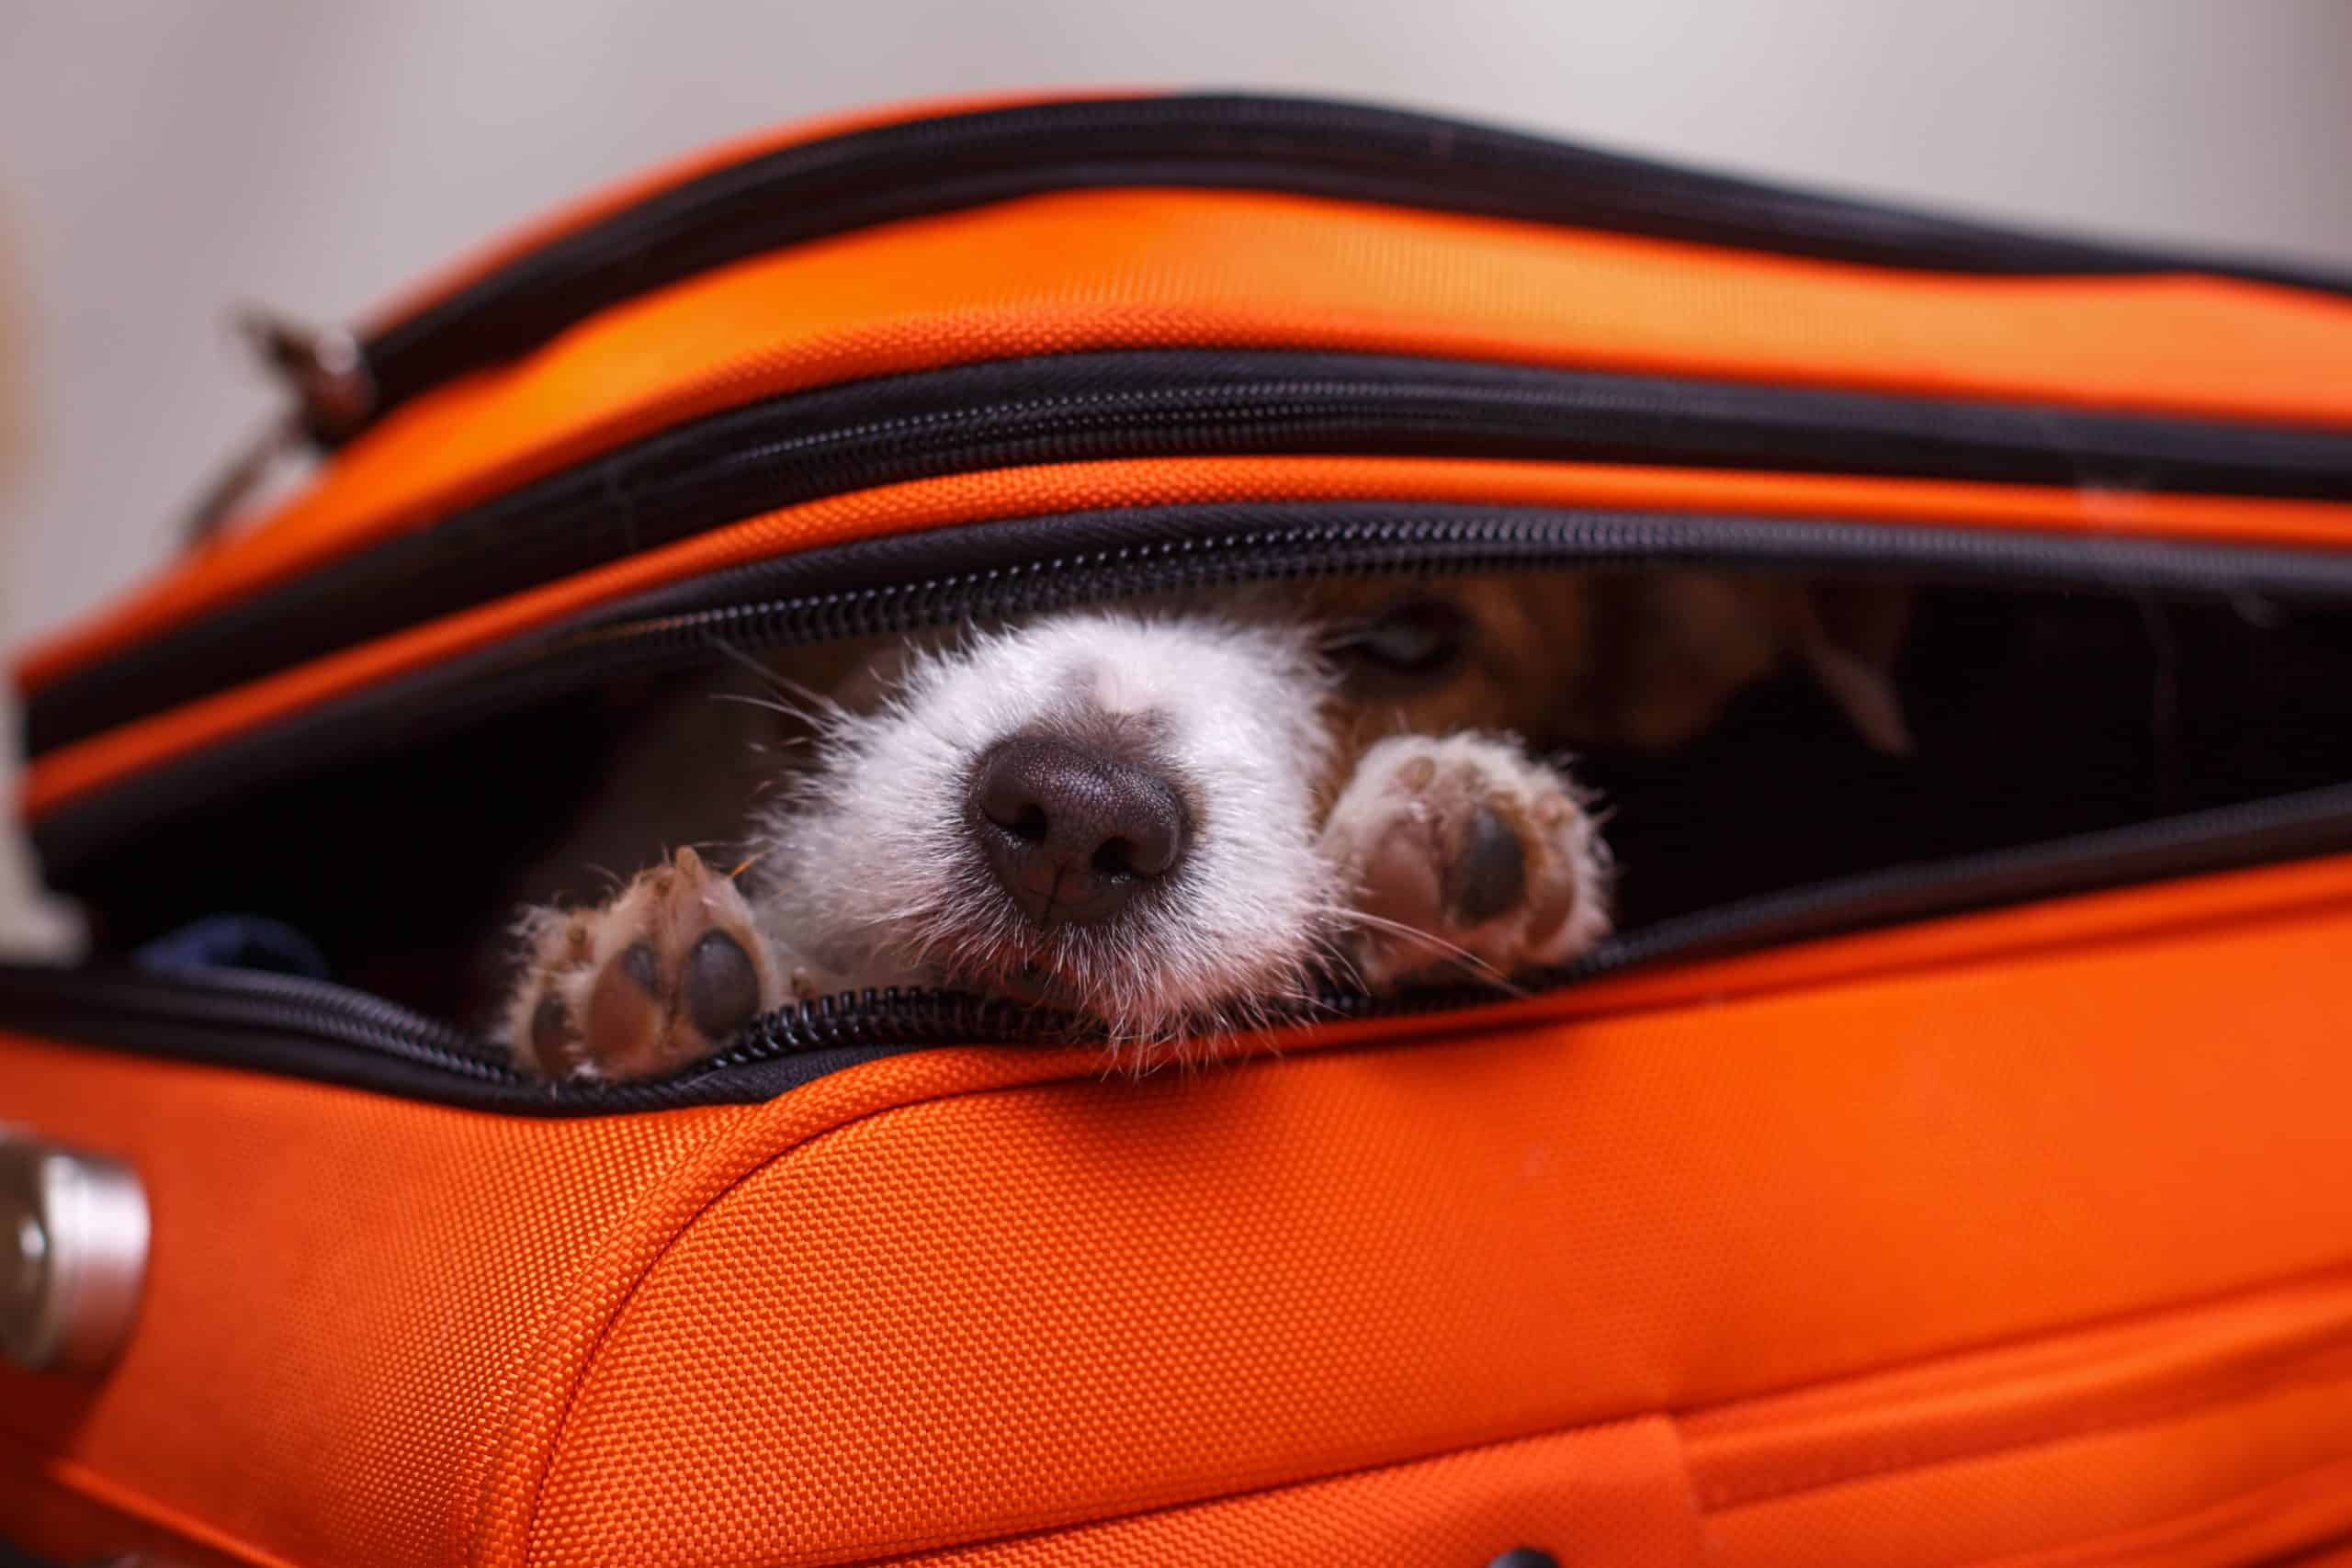 Dog peeks out from open suitcase. Don't leave your pet behind. Bring him along on a dog-friendly holiday.